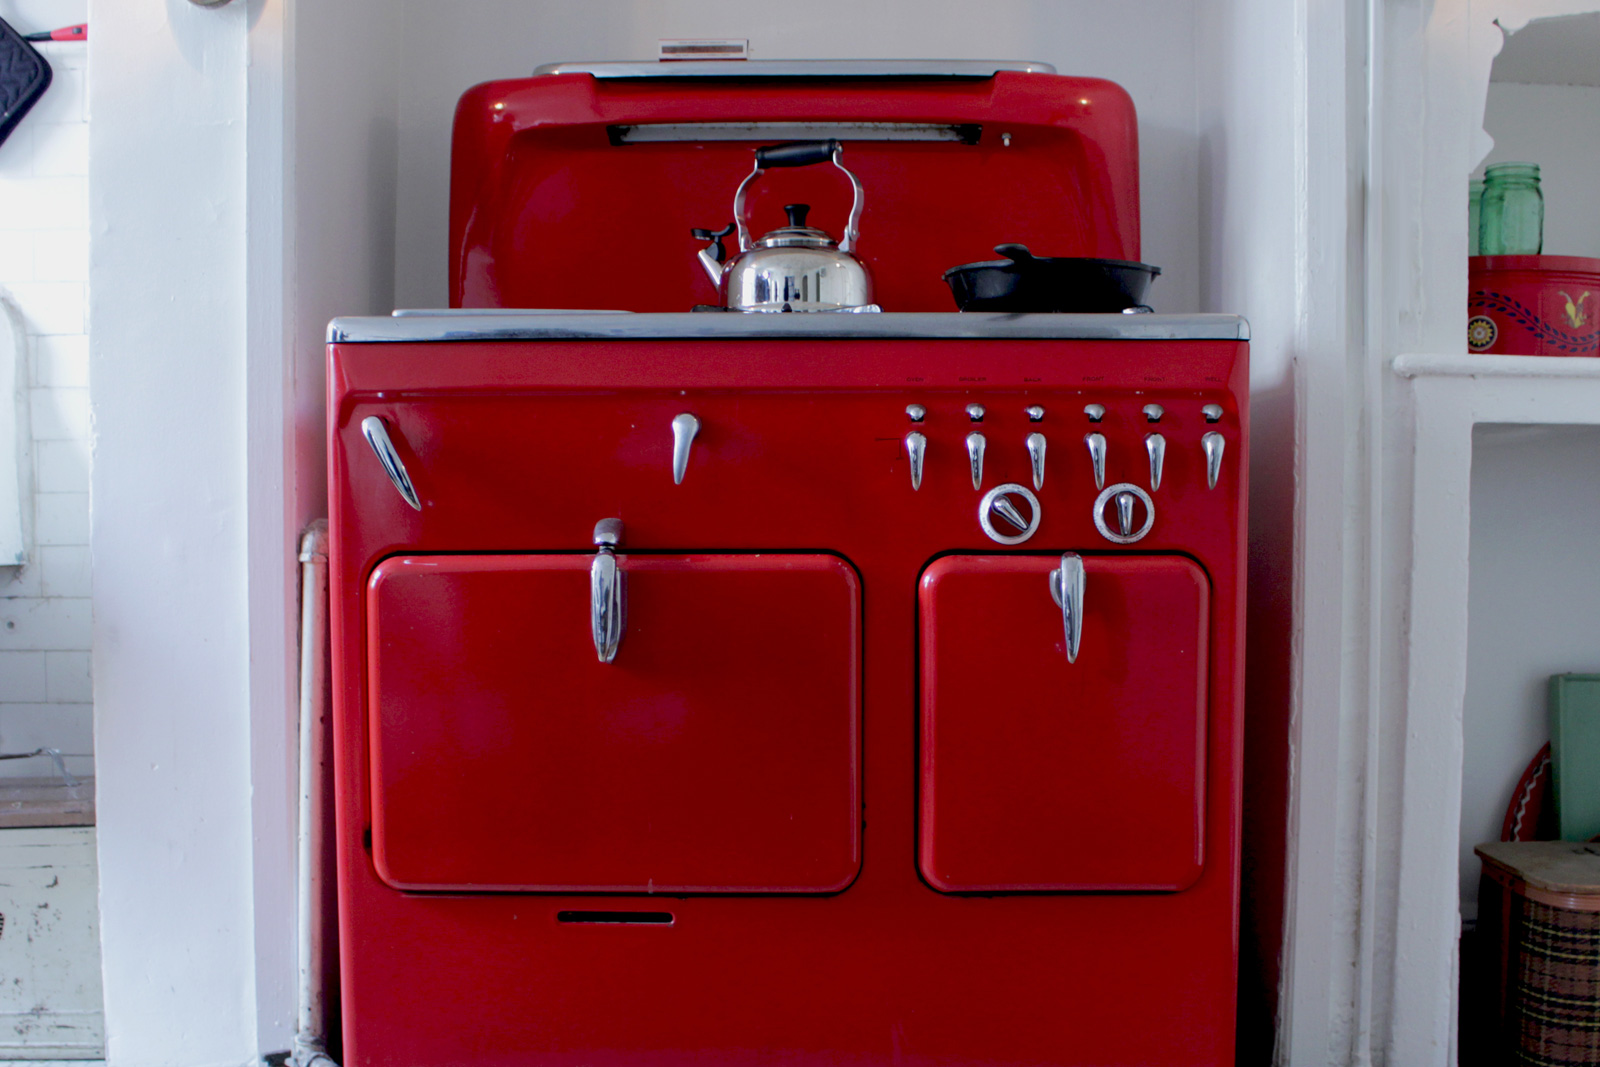 smart options kitchen flooring flooring options for kitchen Red vintage stove in a home kitchen